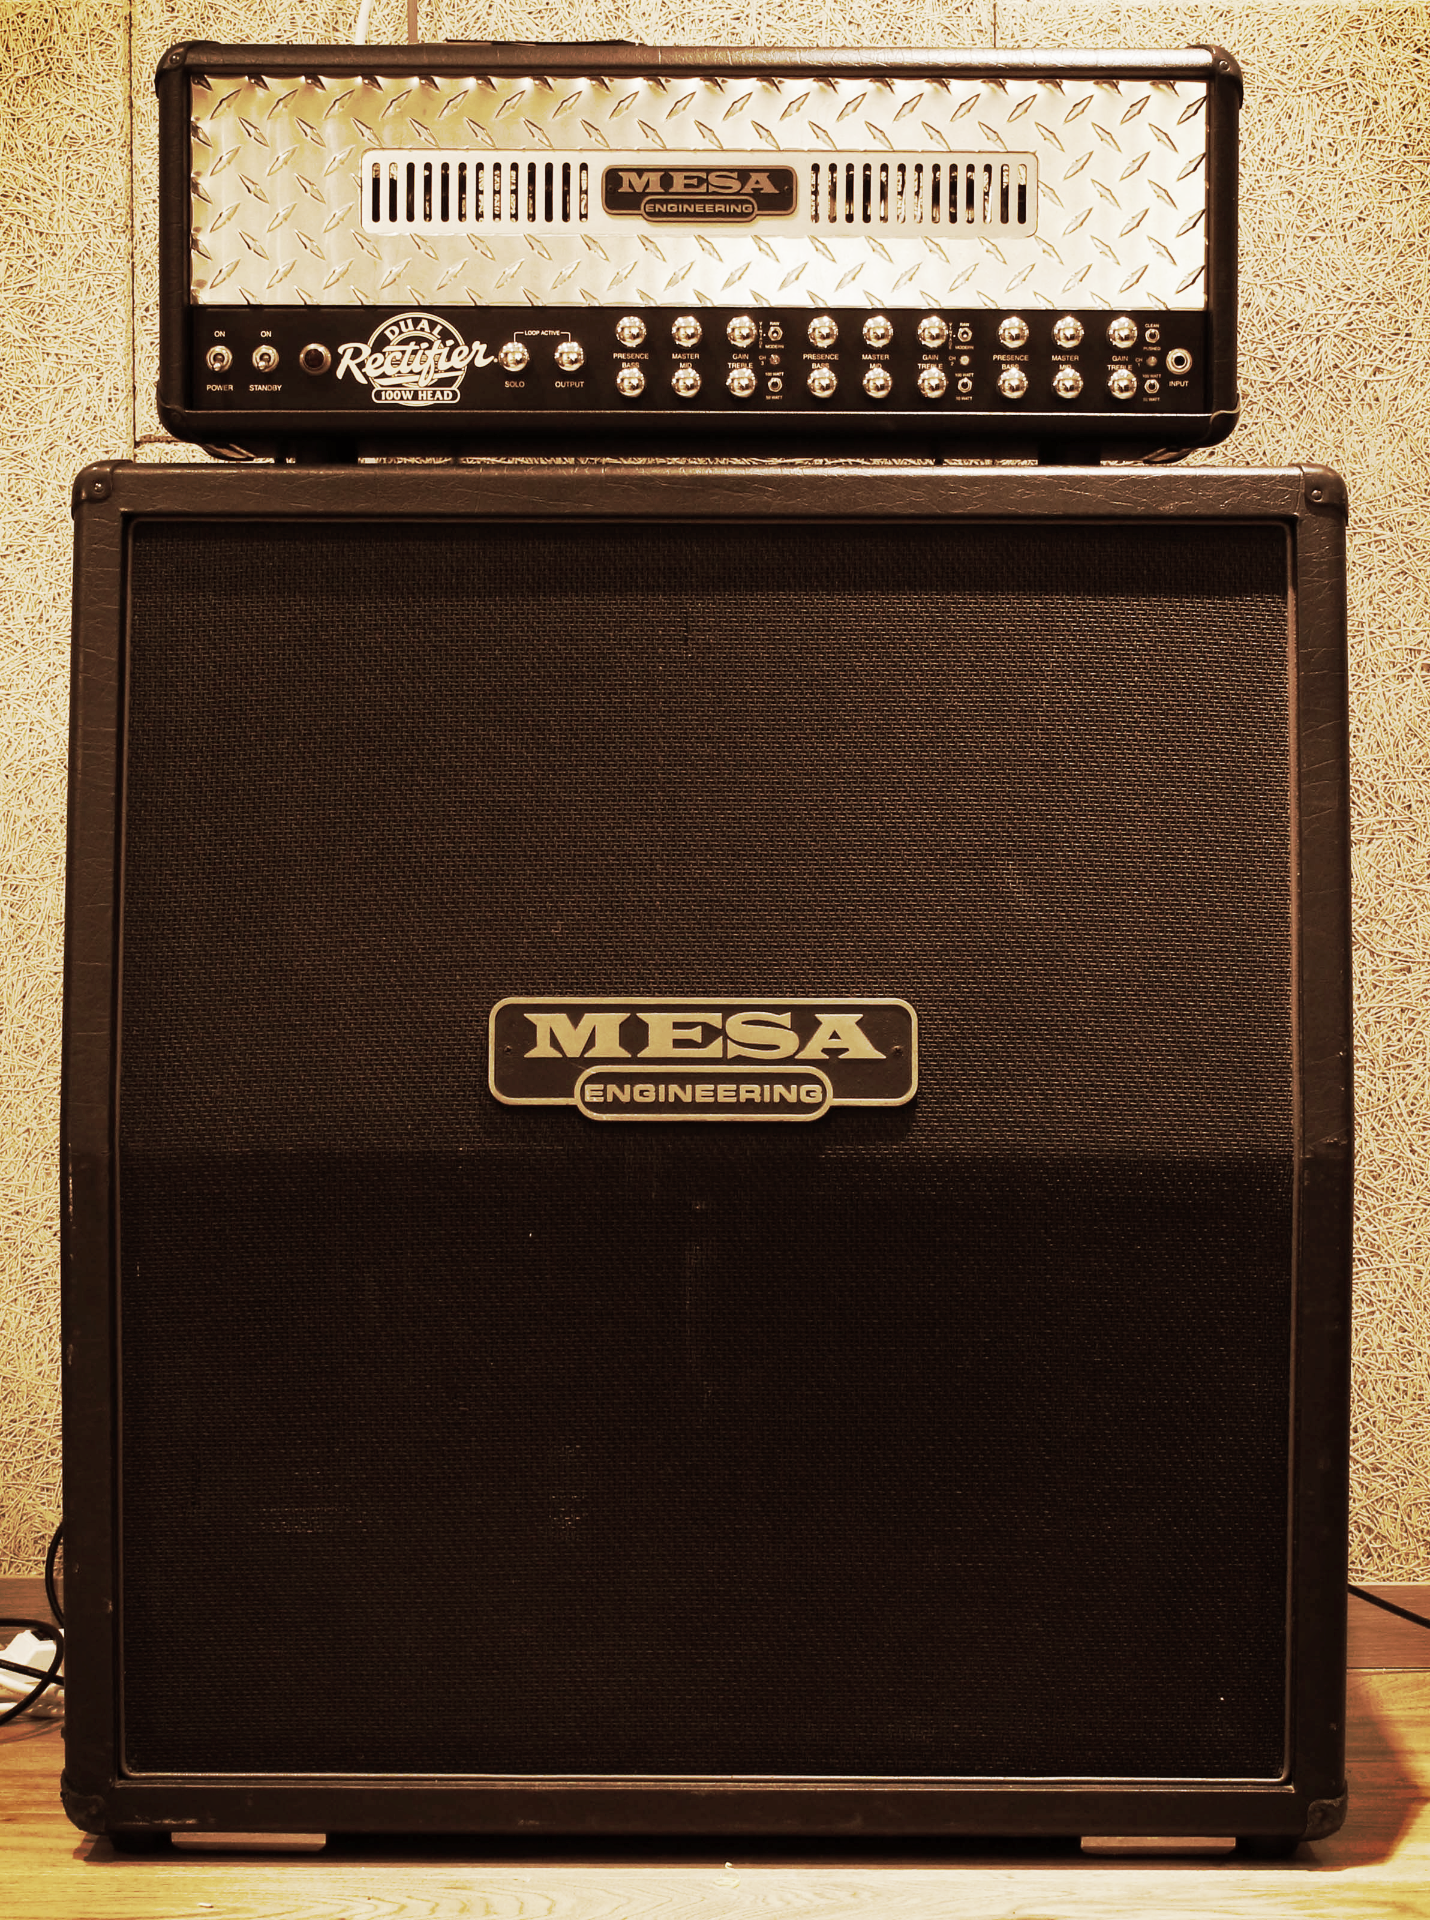 A room Guitar amp